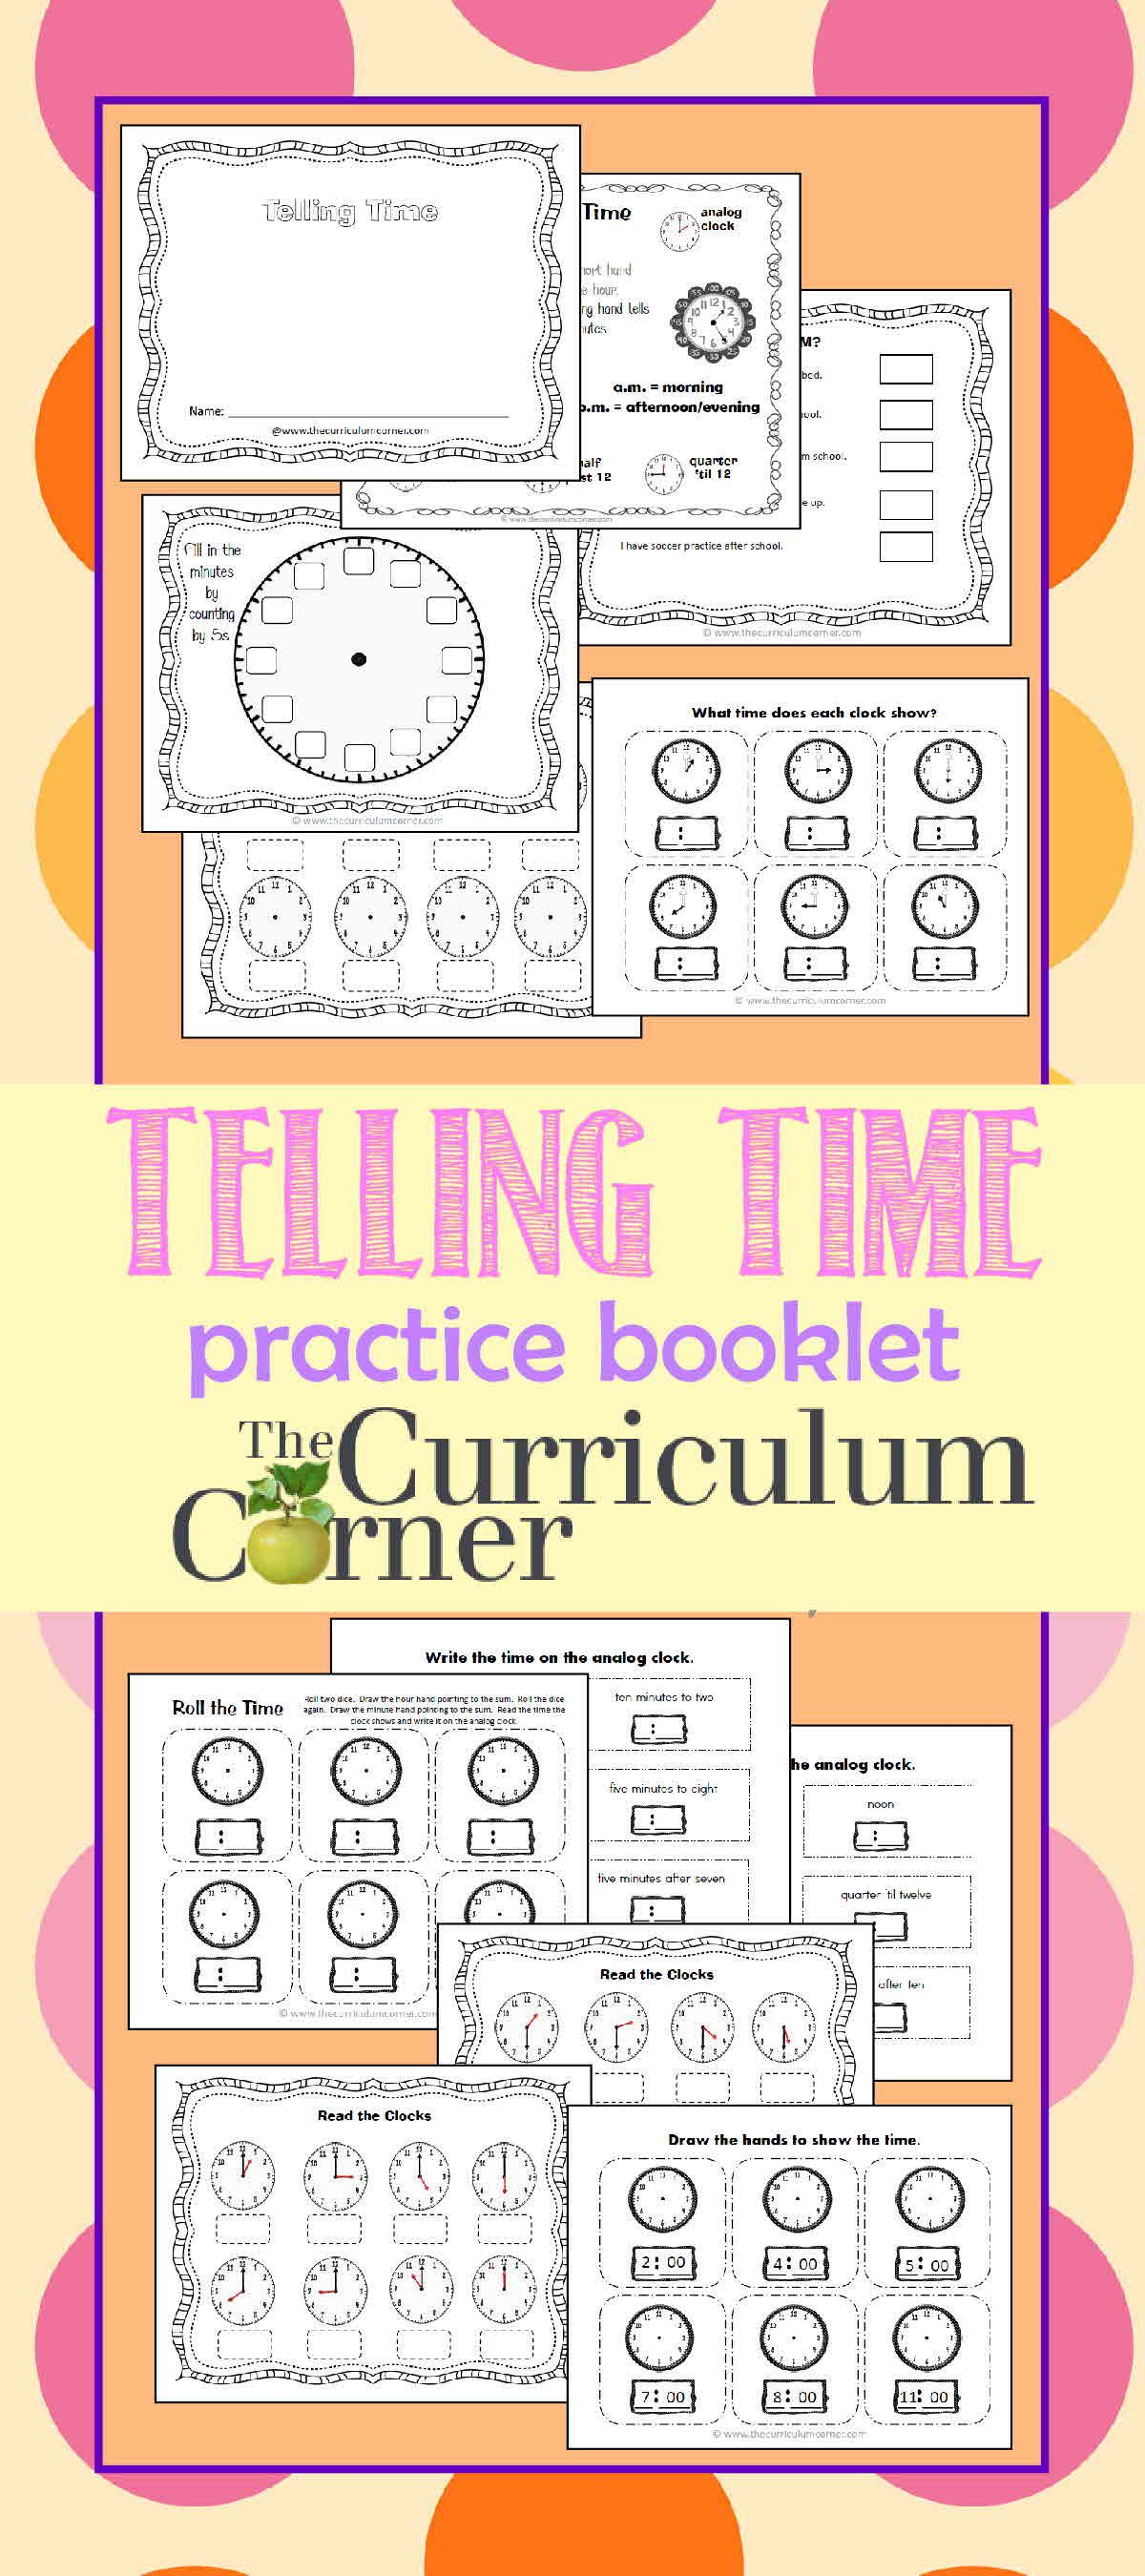 Telling Time Practice Booklet 2 Math Teaching math